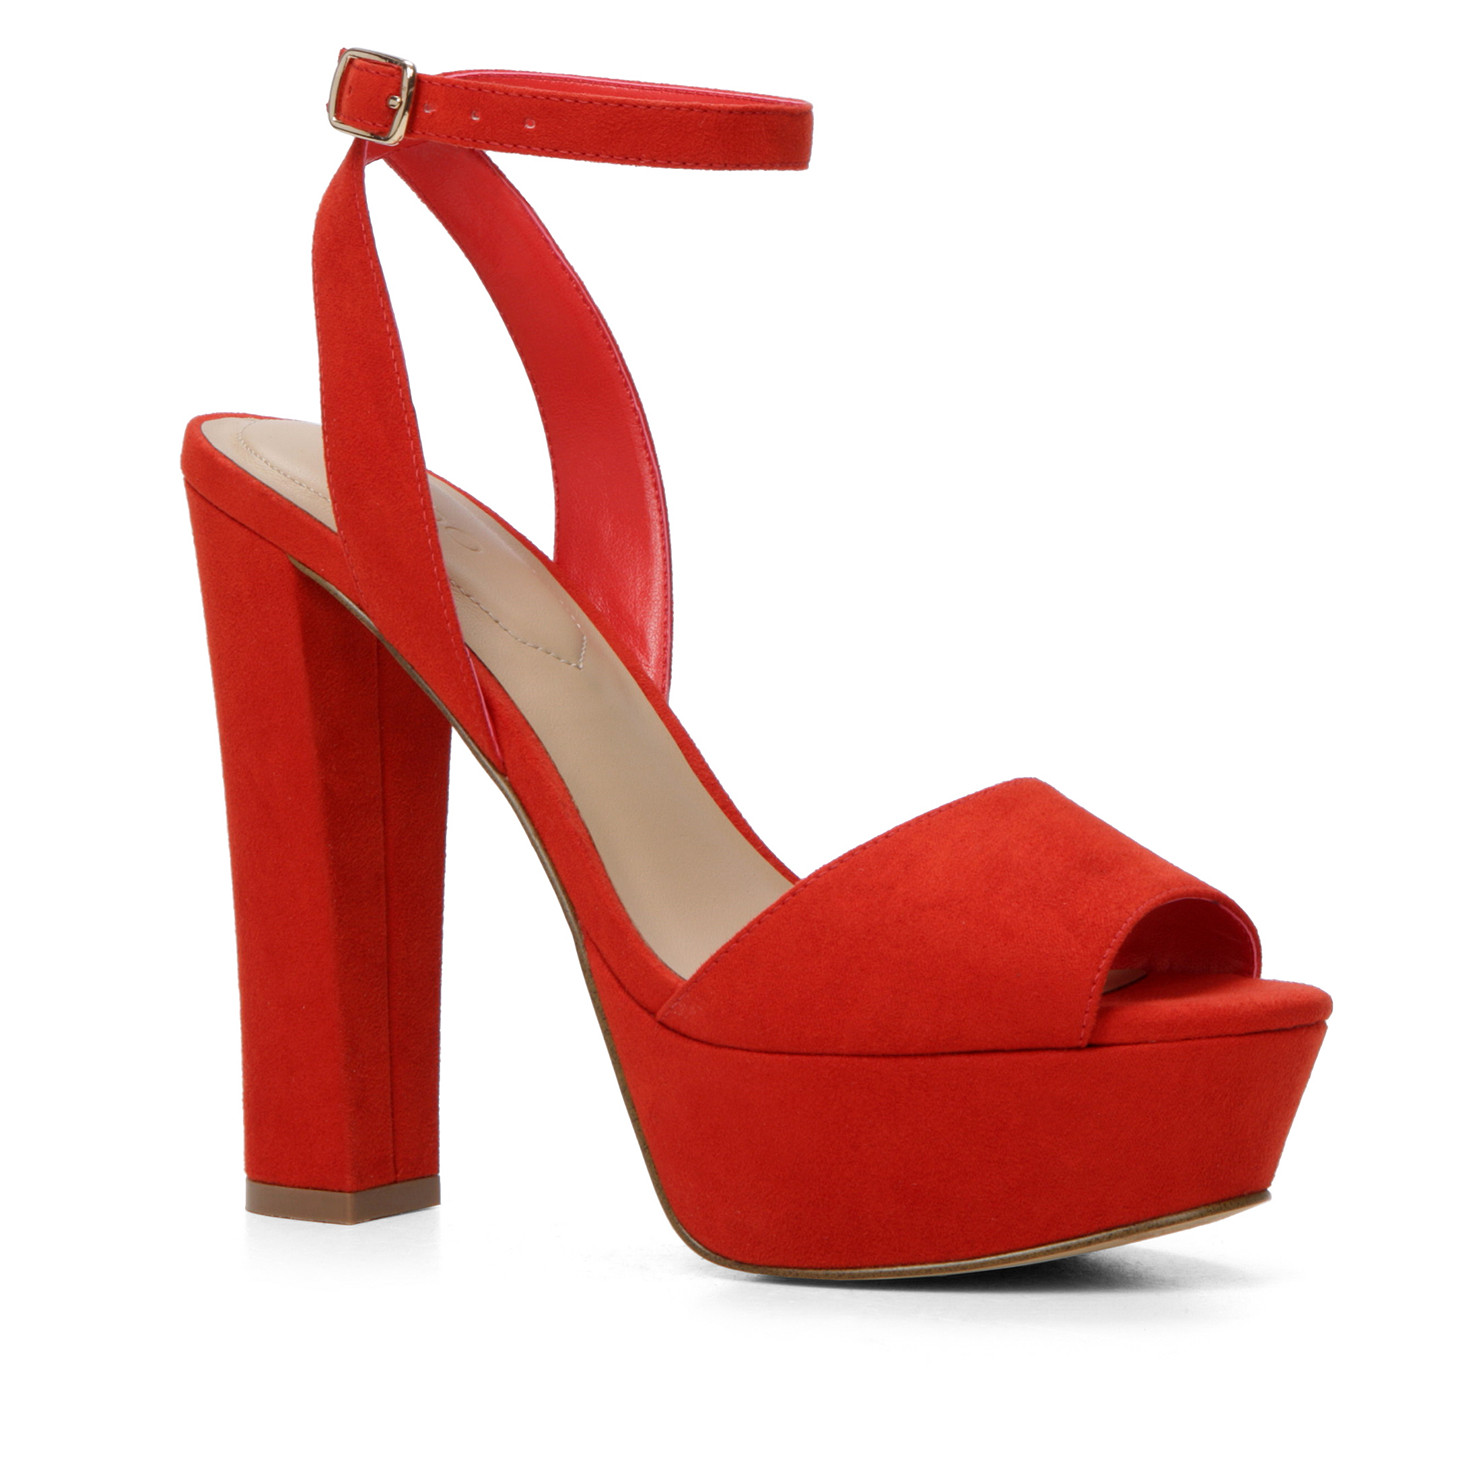 21 Most Comfortable High Heels - ELLE.com Editors Pick Heels You ...